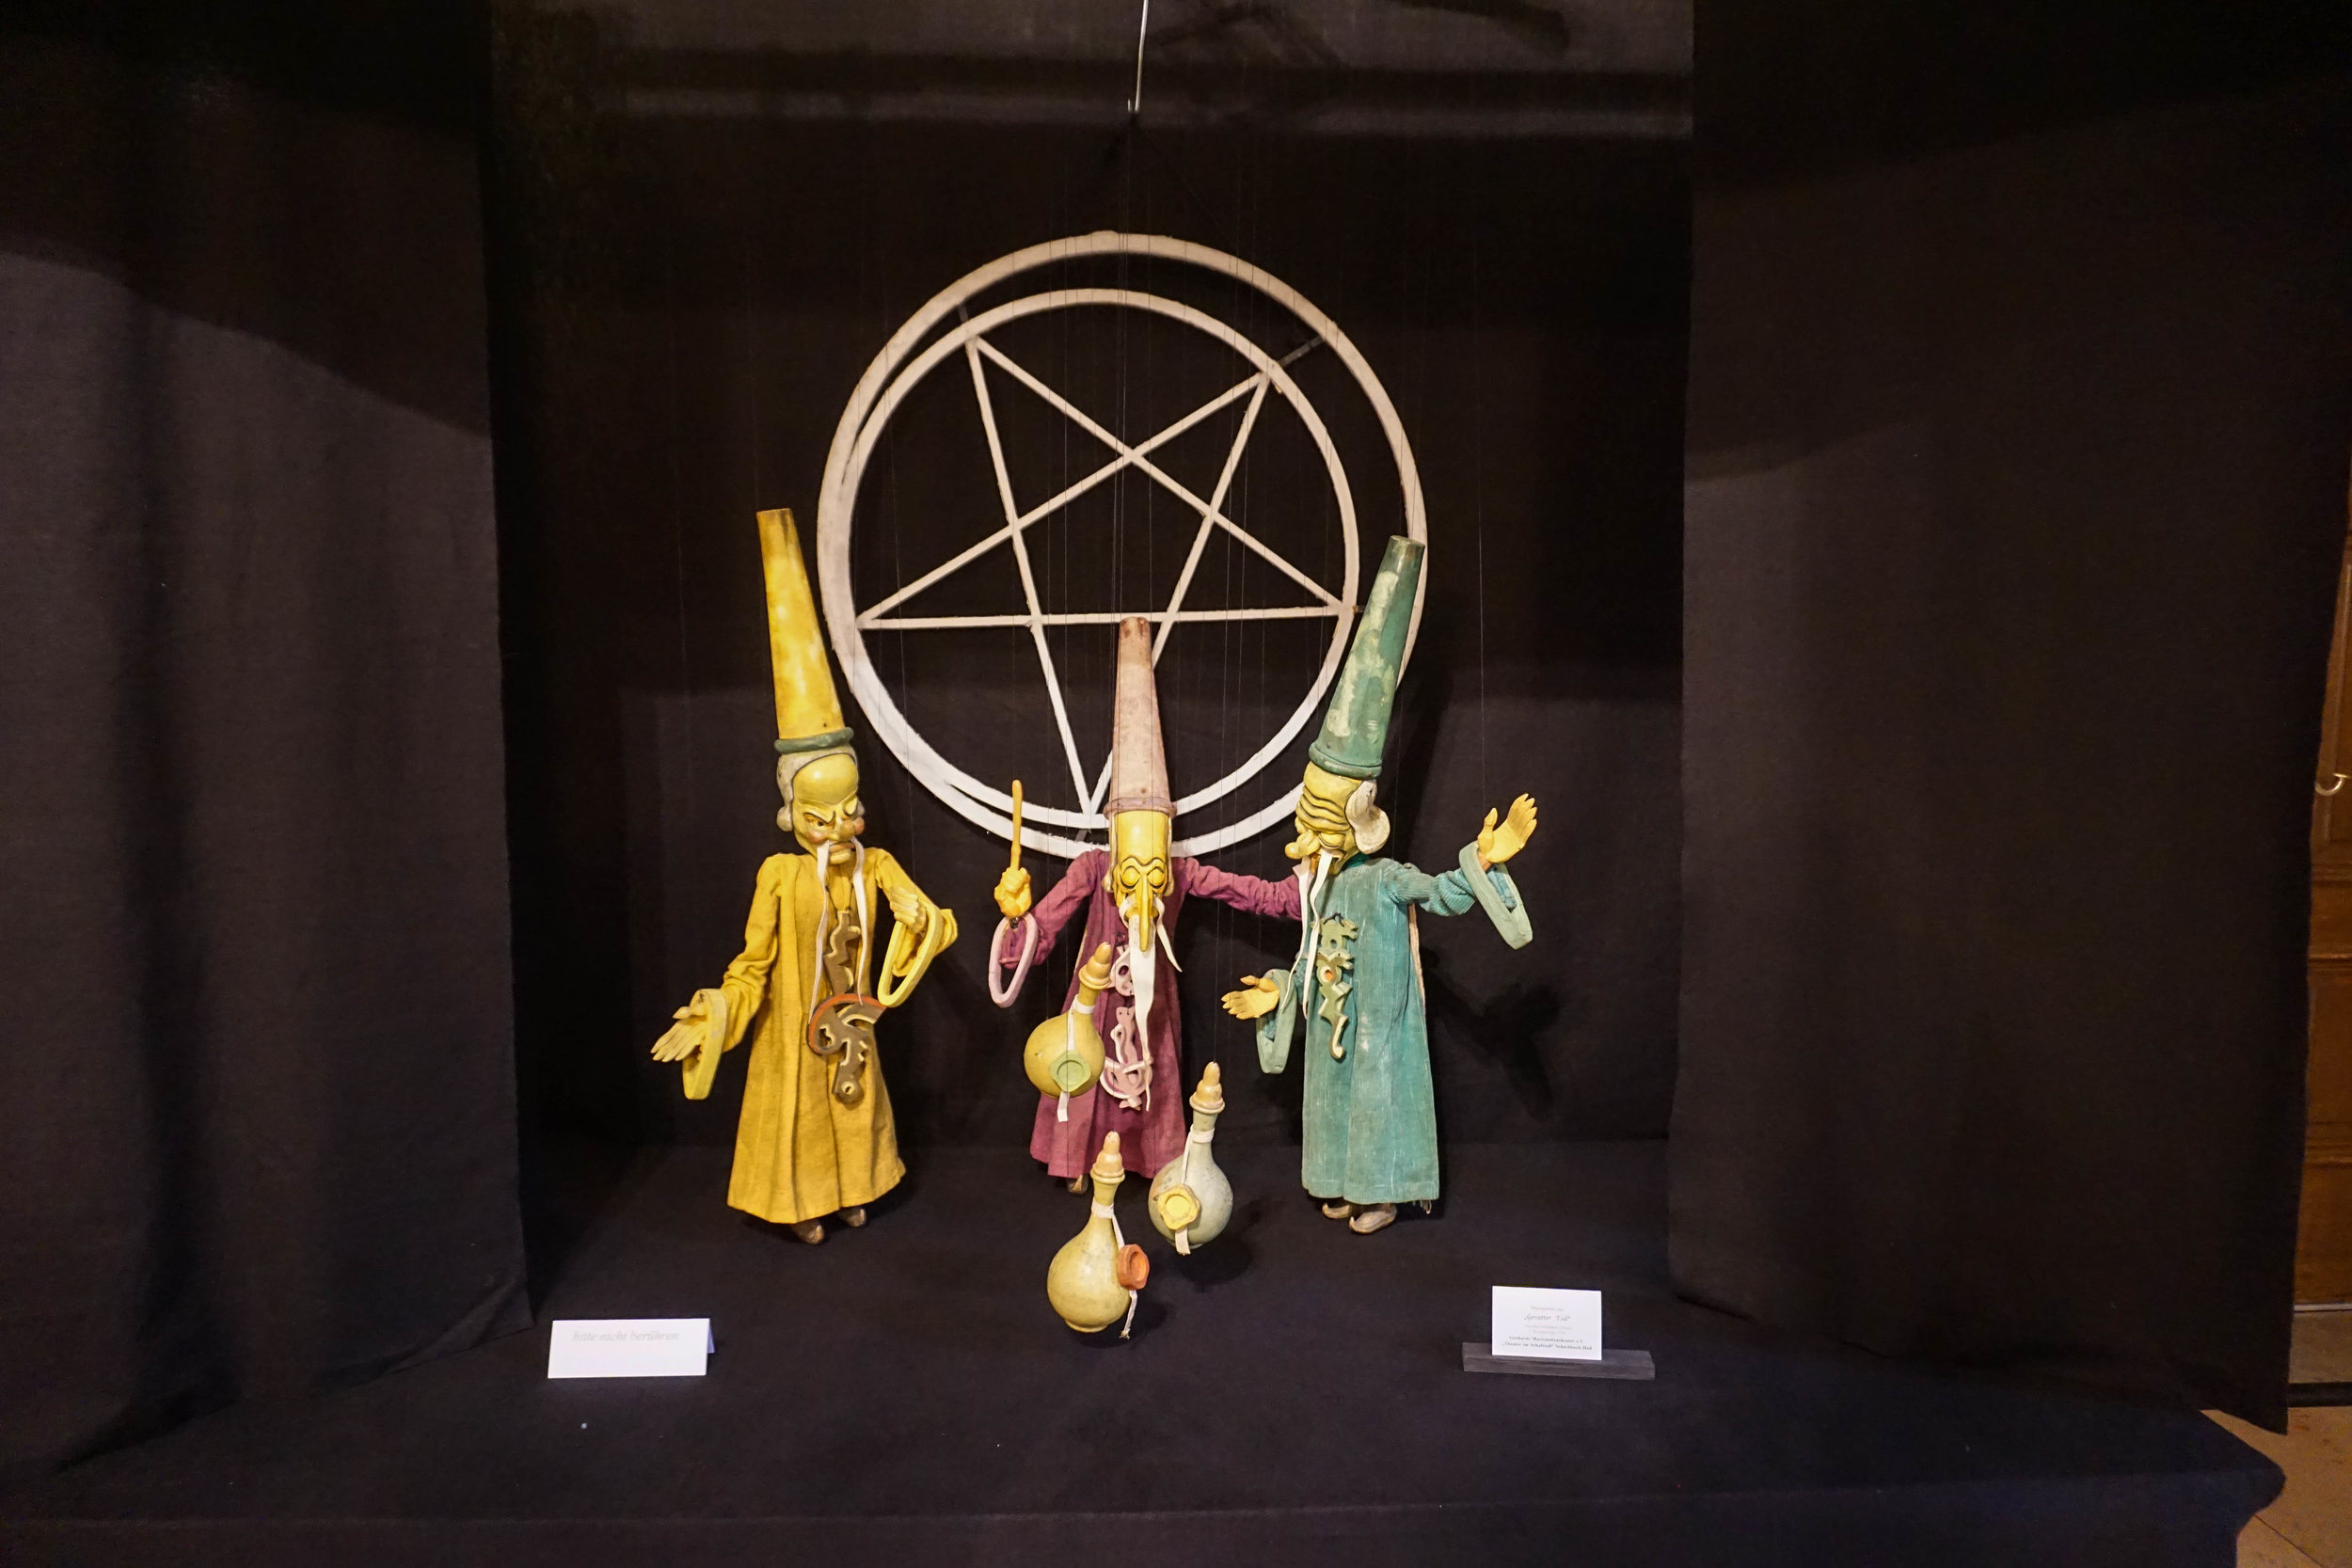 Look - the Three Wisemen with the Inverted Pentagram - so festive!